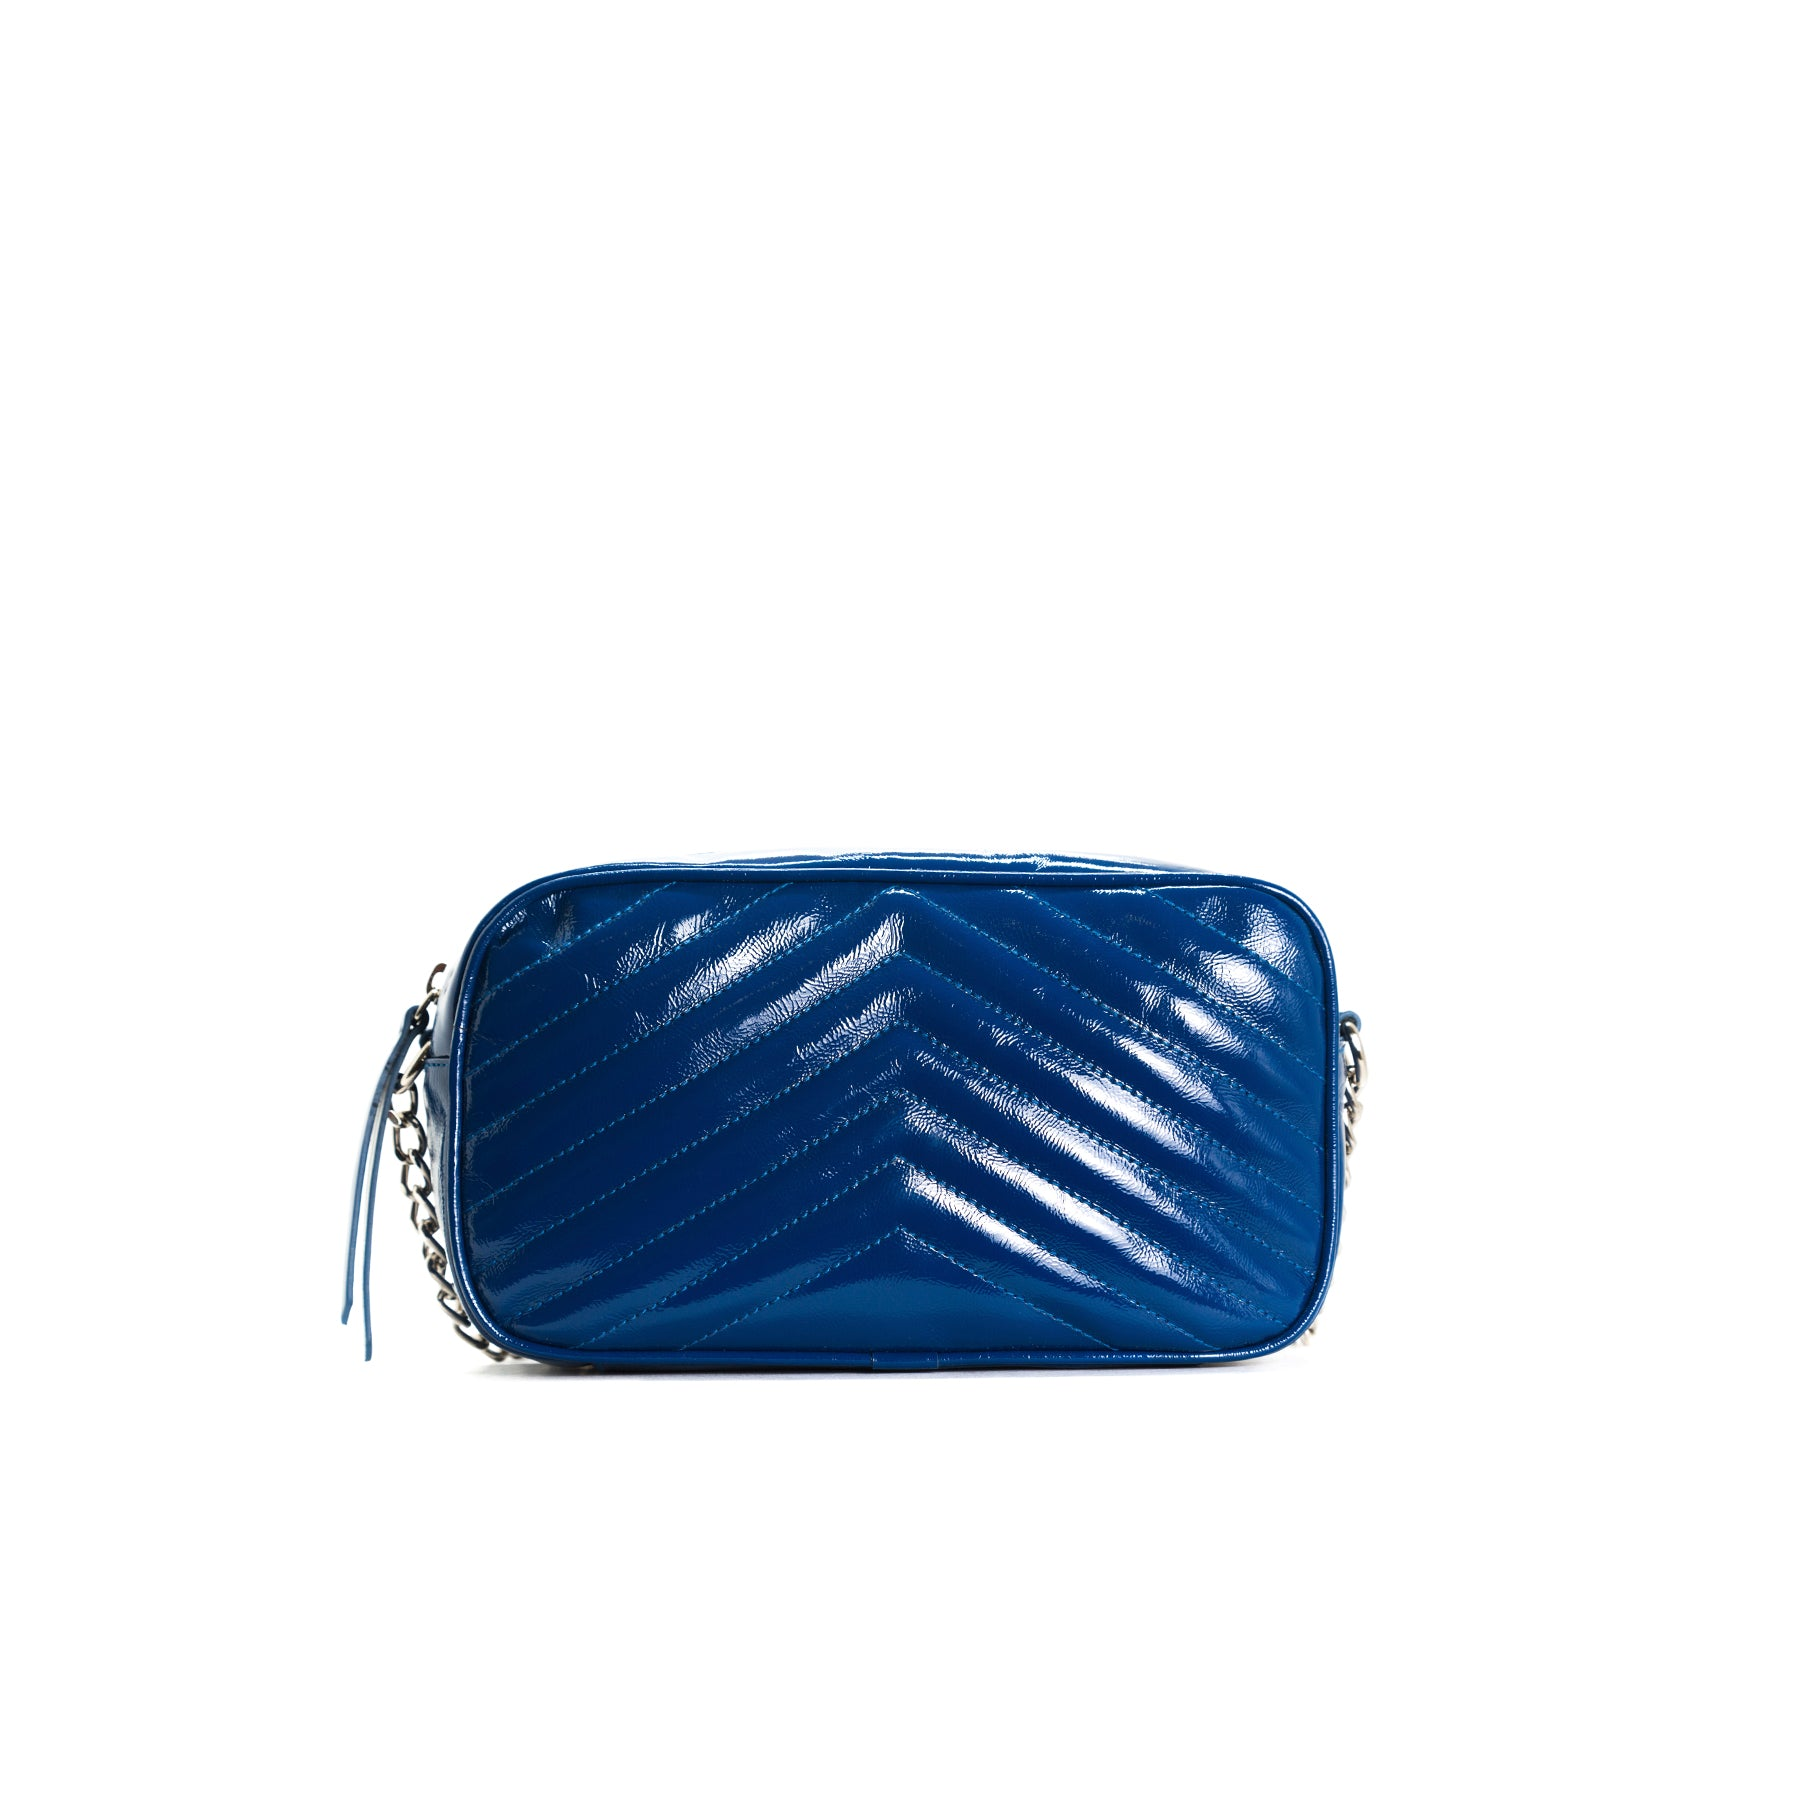 Bijoux Navy Naplack Bag